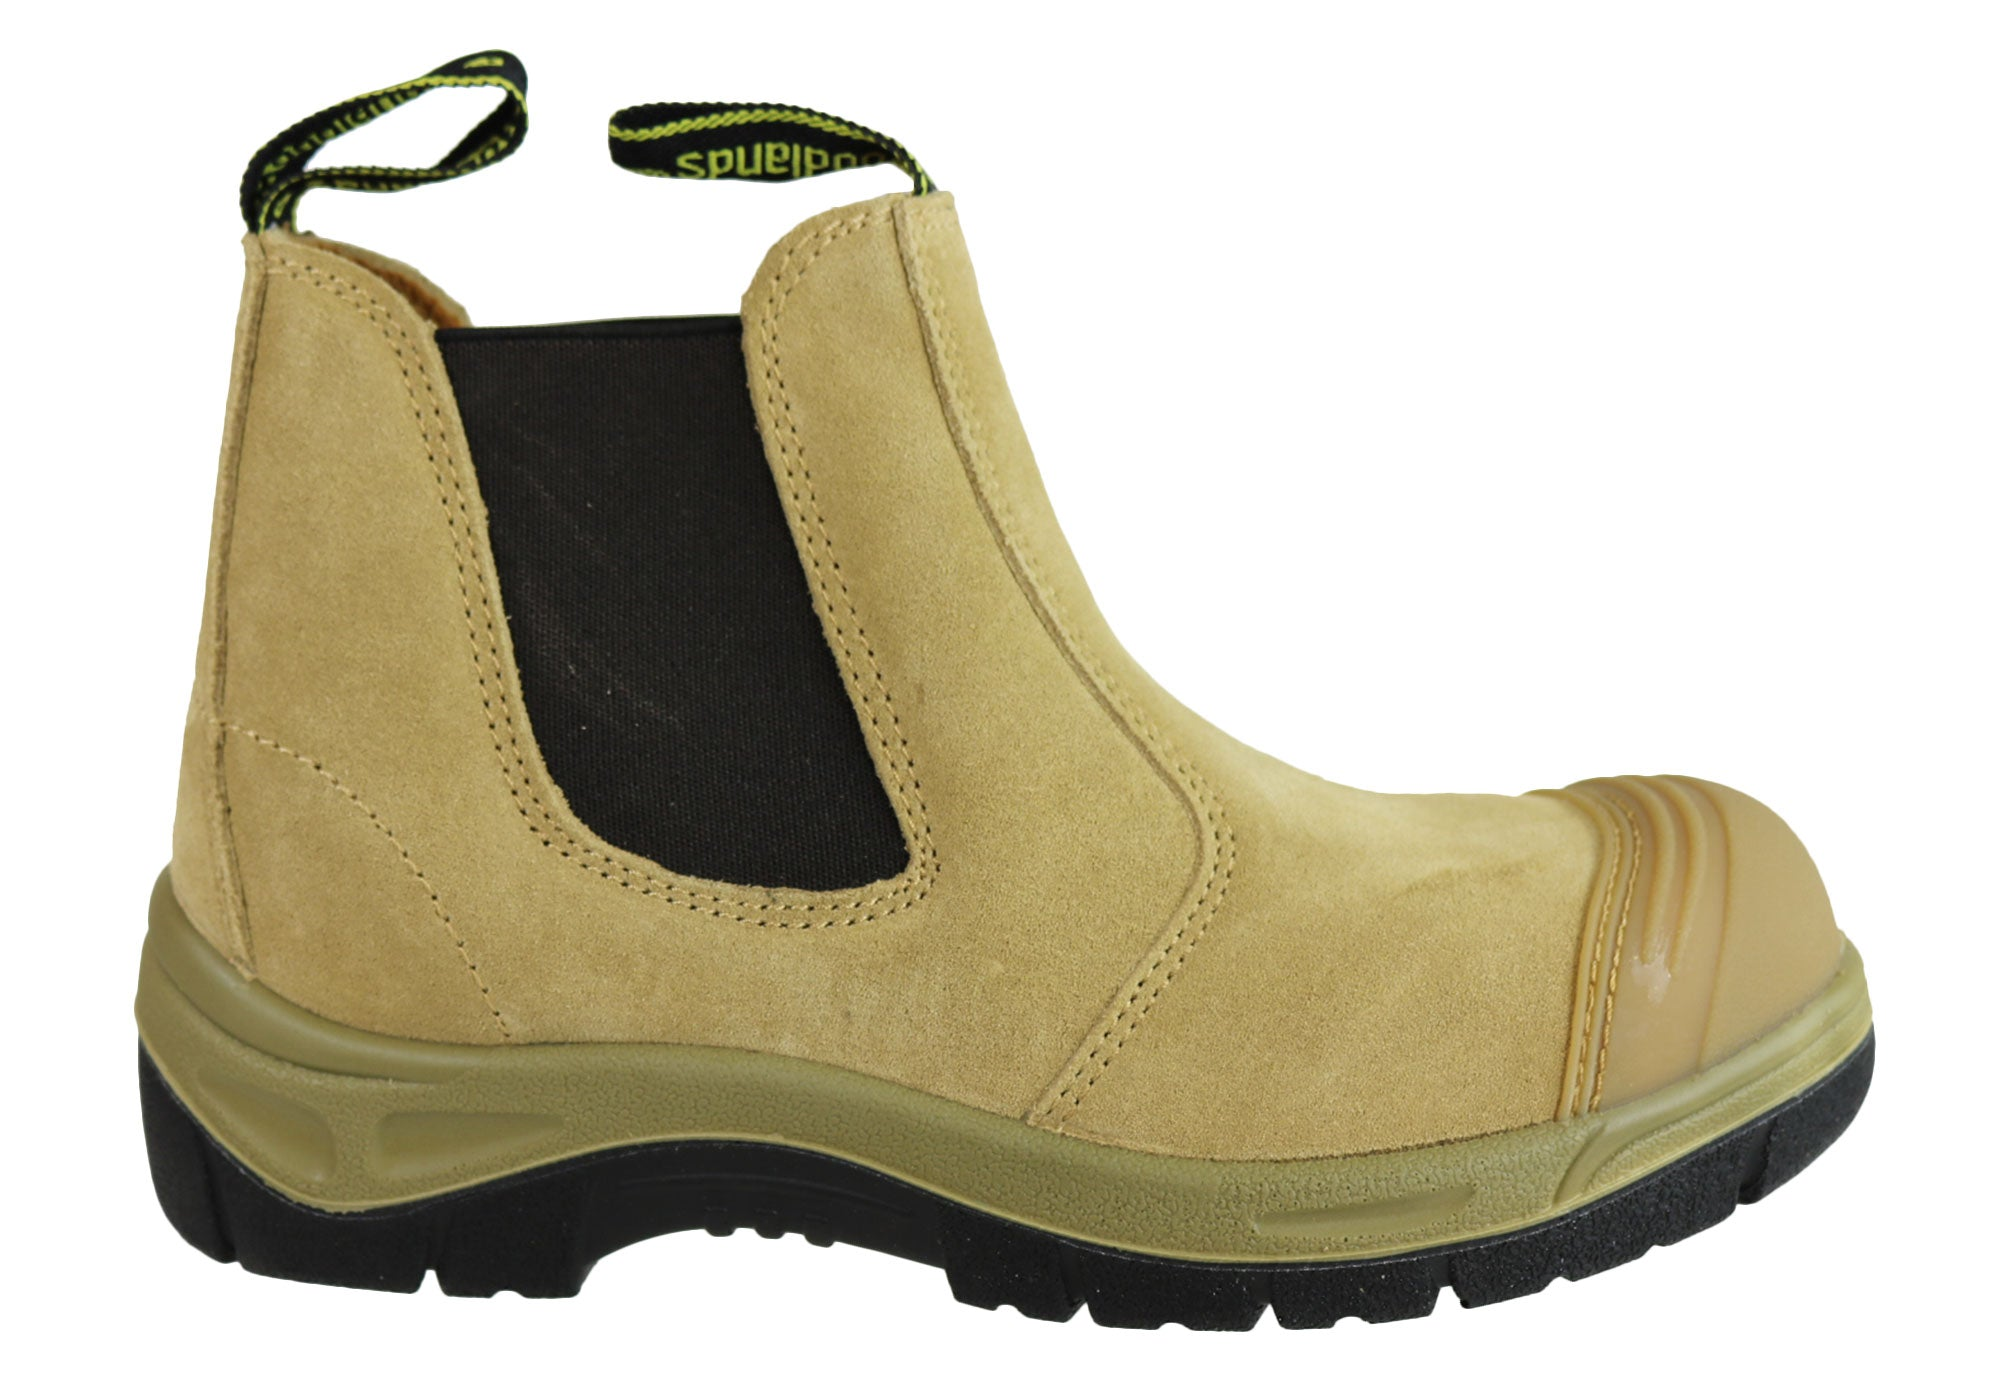 d4dbea24272 Woodlands Contractor Mens Steel Toe Work Boots   Brand House Direct